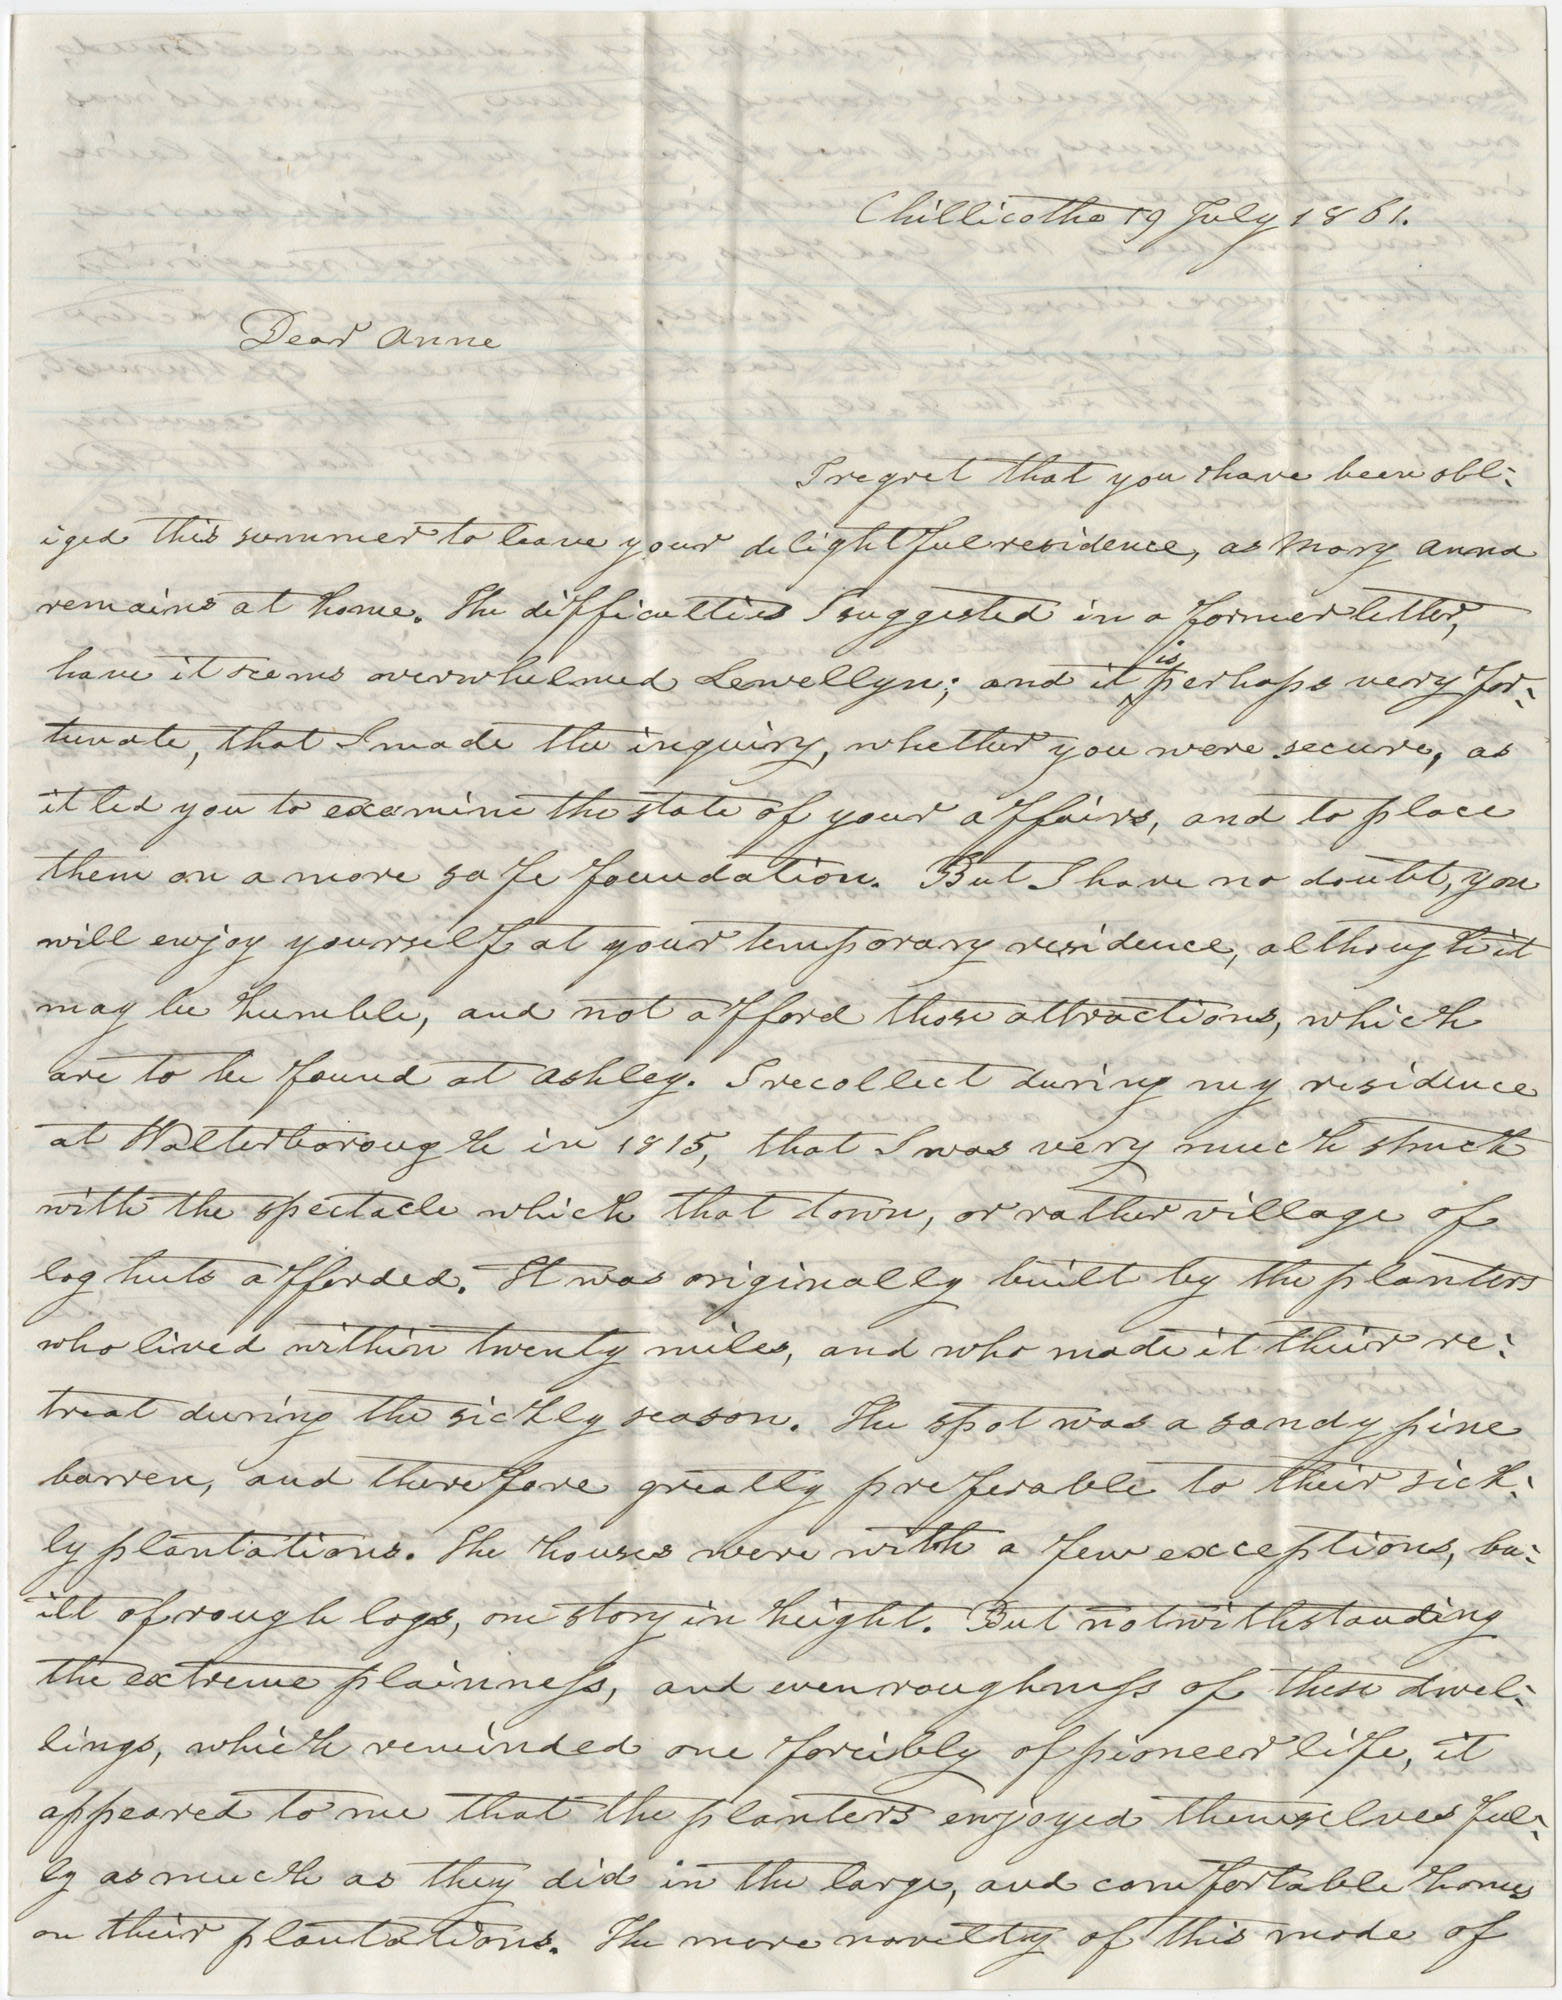 Letter to Anna R. Frost from Frederick Grimke, July 19, 1861